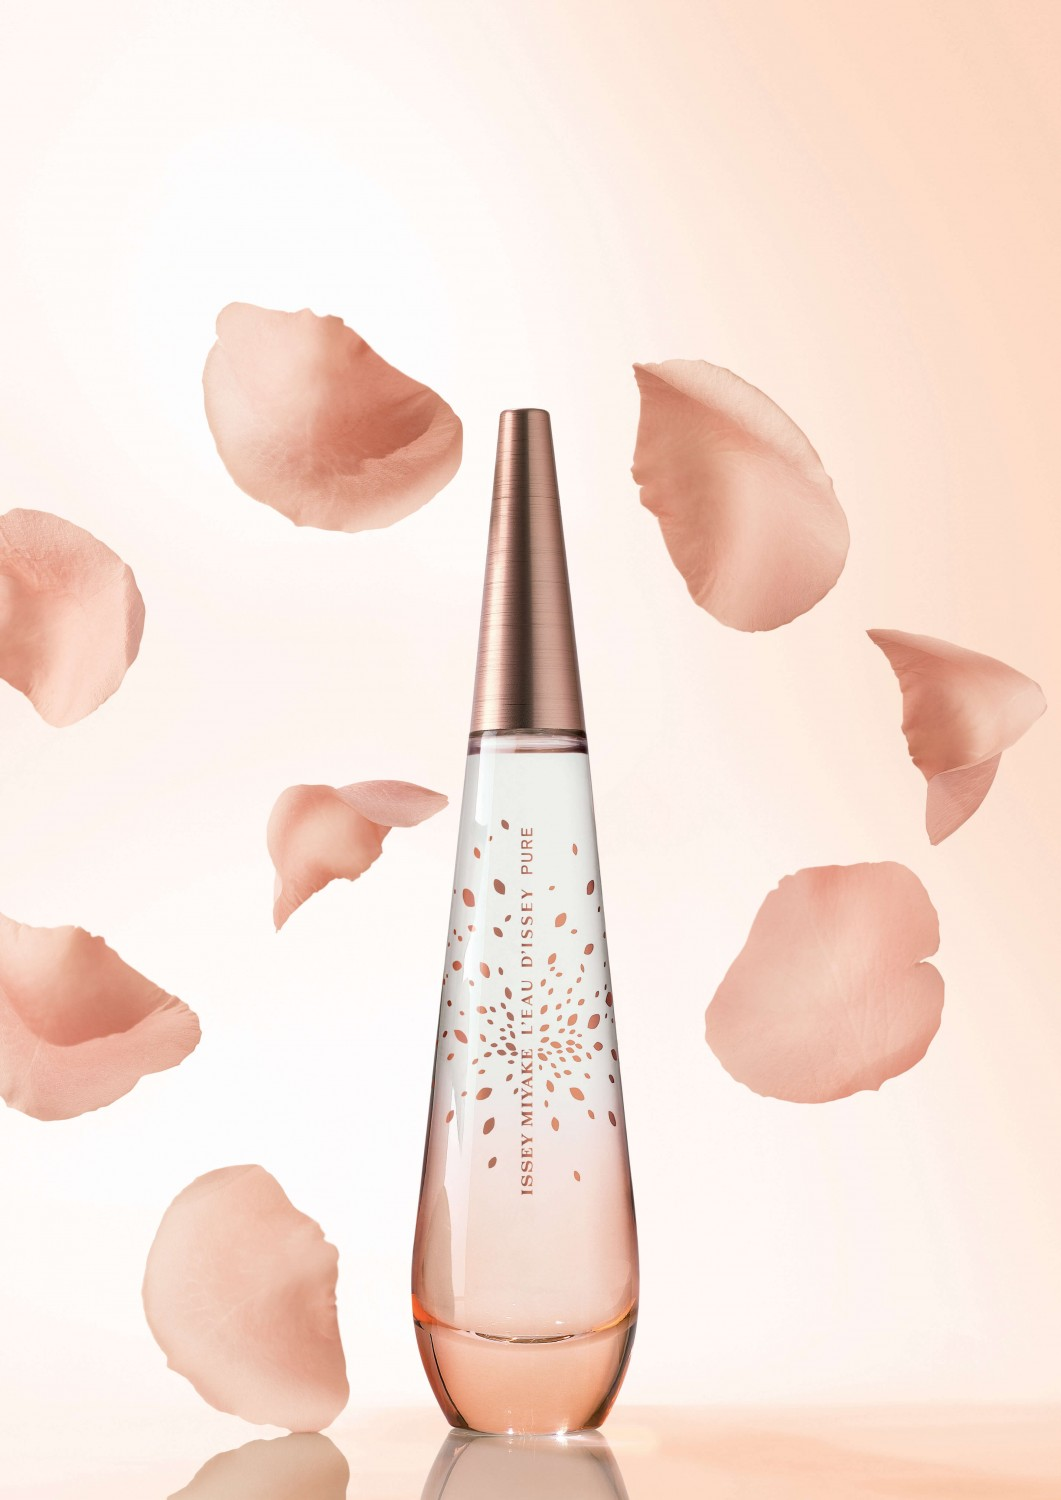 Issey Miyake L'Eau d'Issey Pure Petale de Nectar Perfume